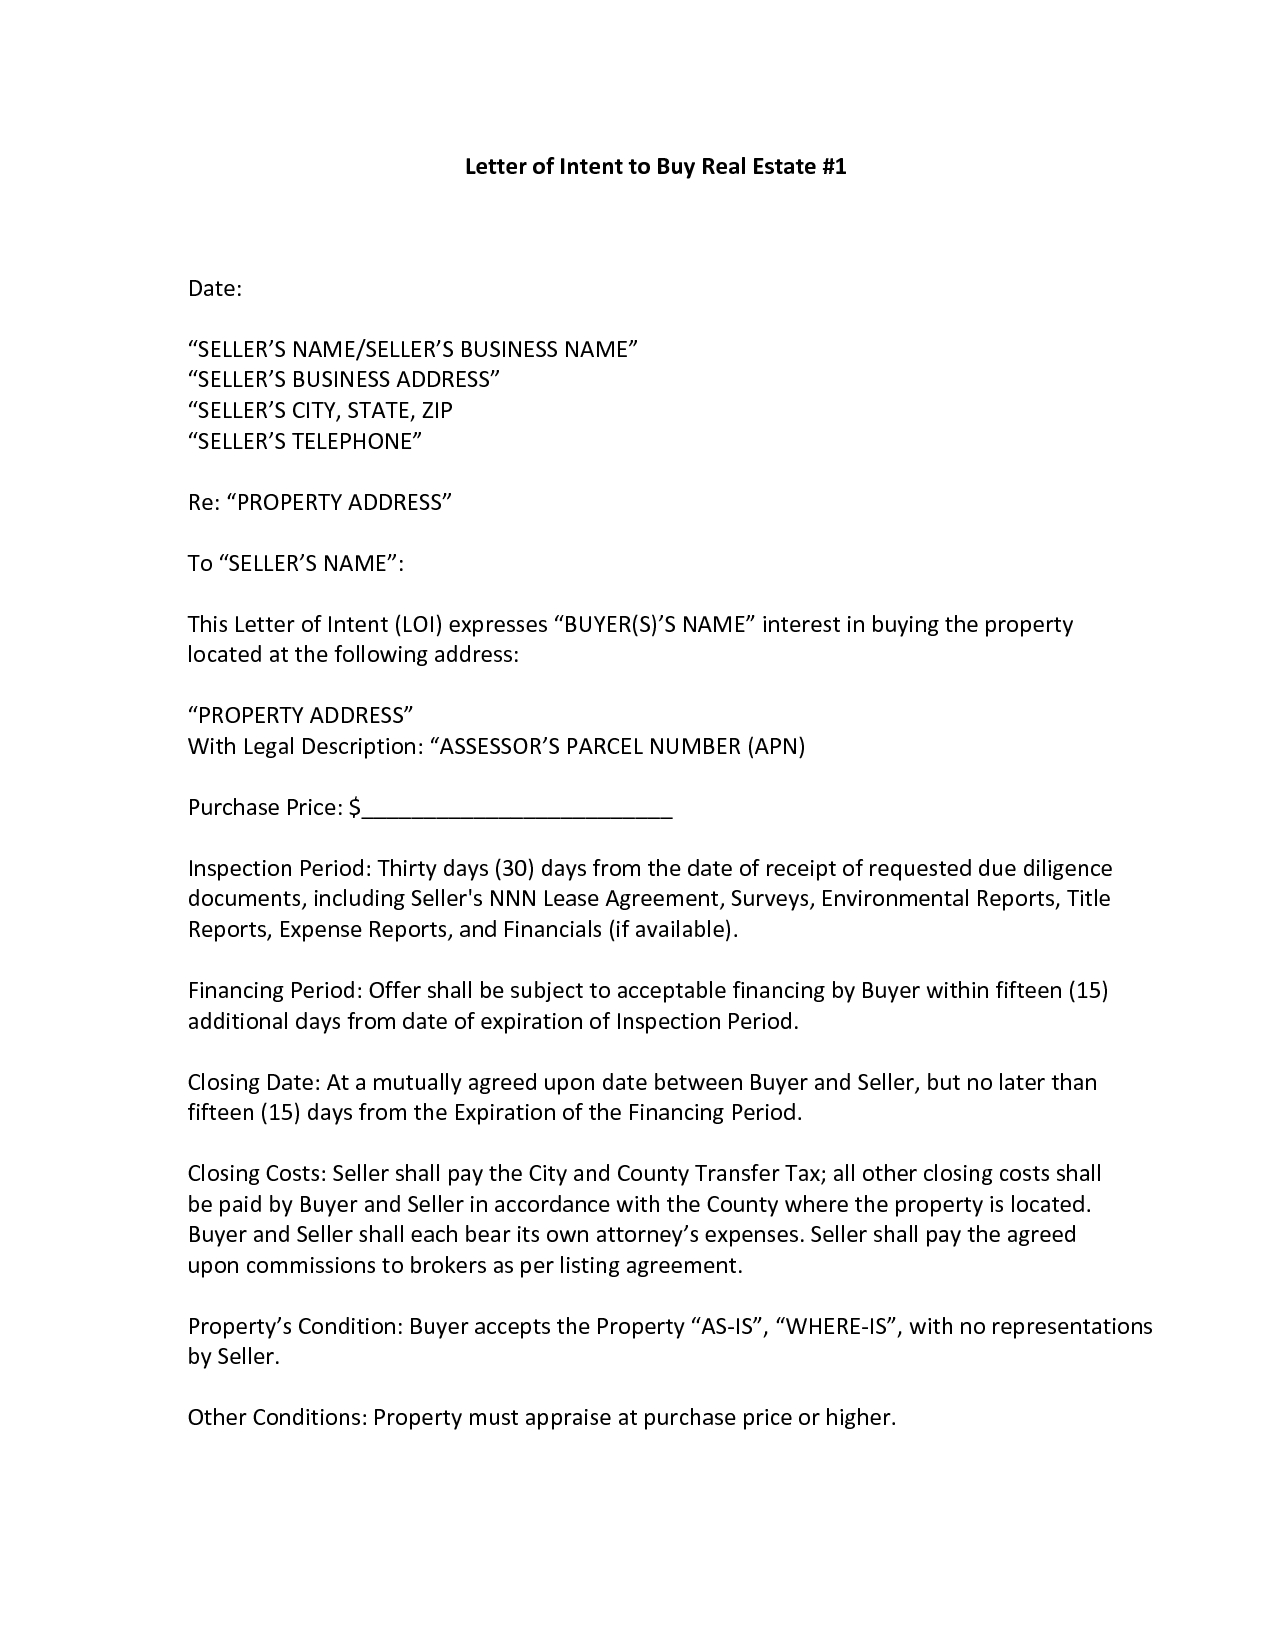 Commercial Real Estate Letter Of Intent Template - Sample Letter Intent Purchase Real Estate New Property Fer